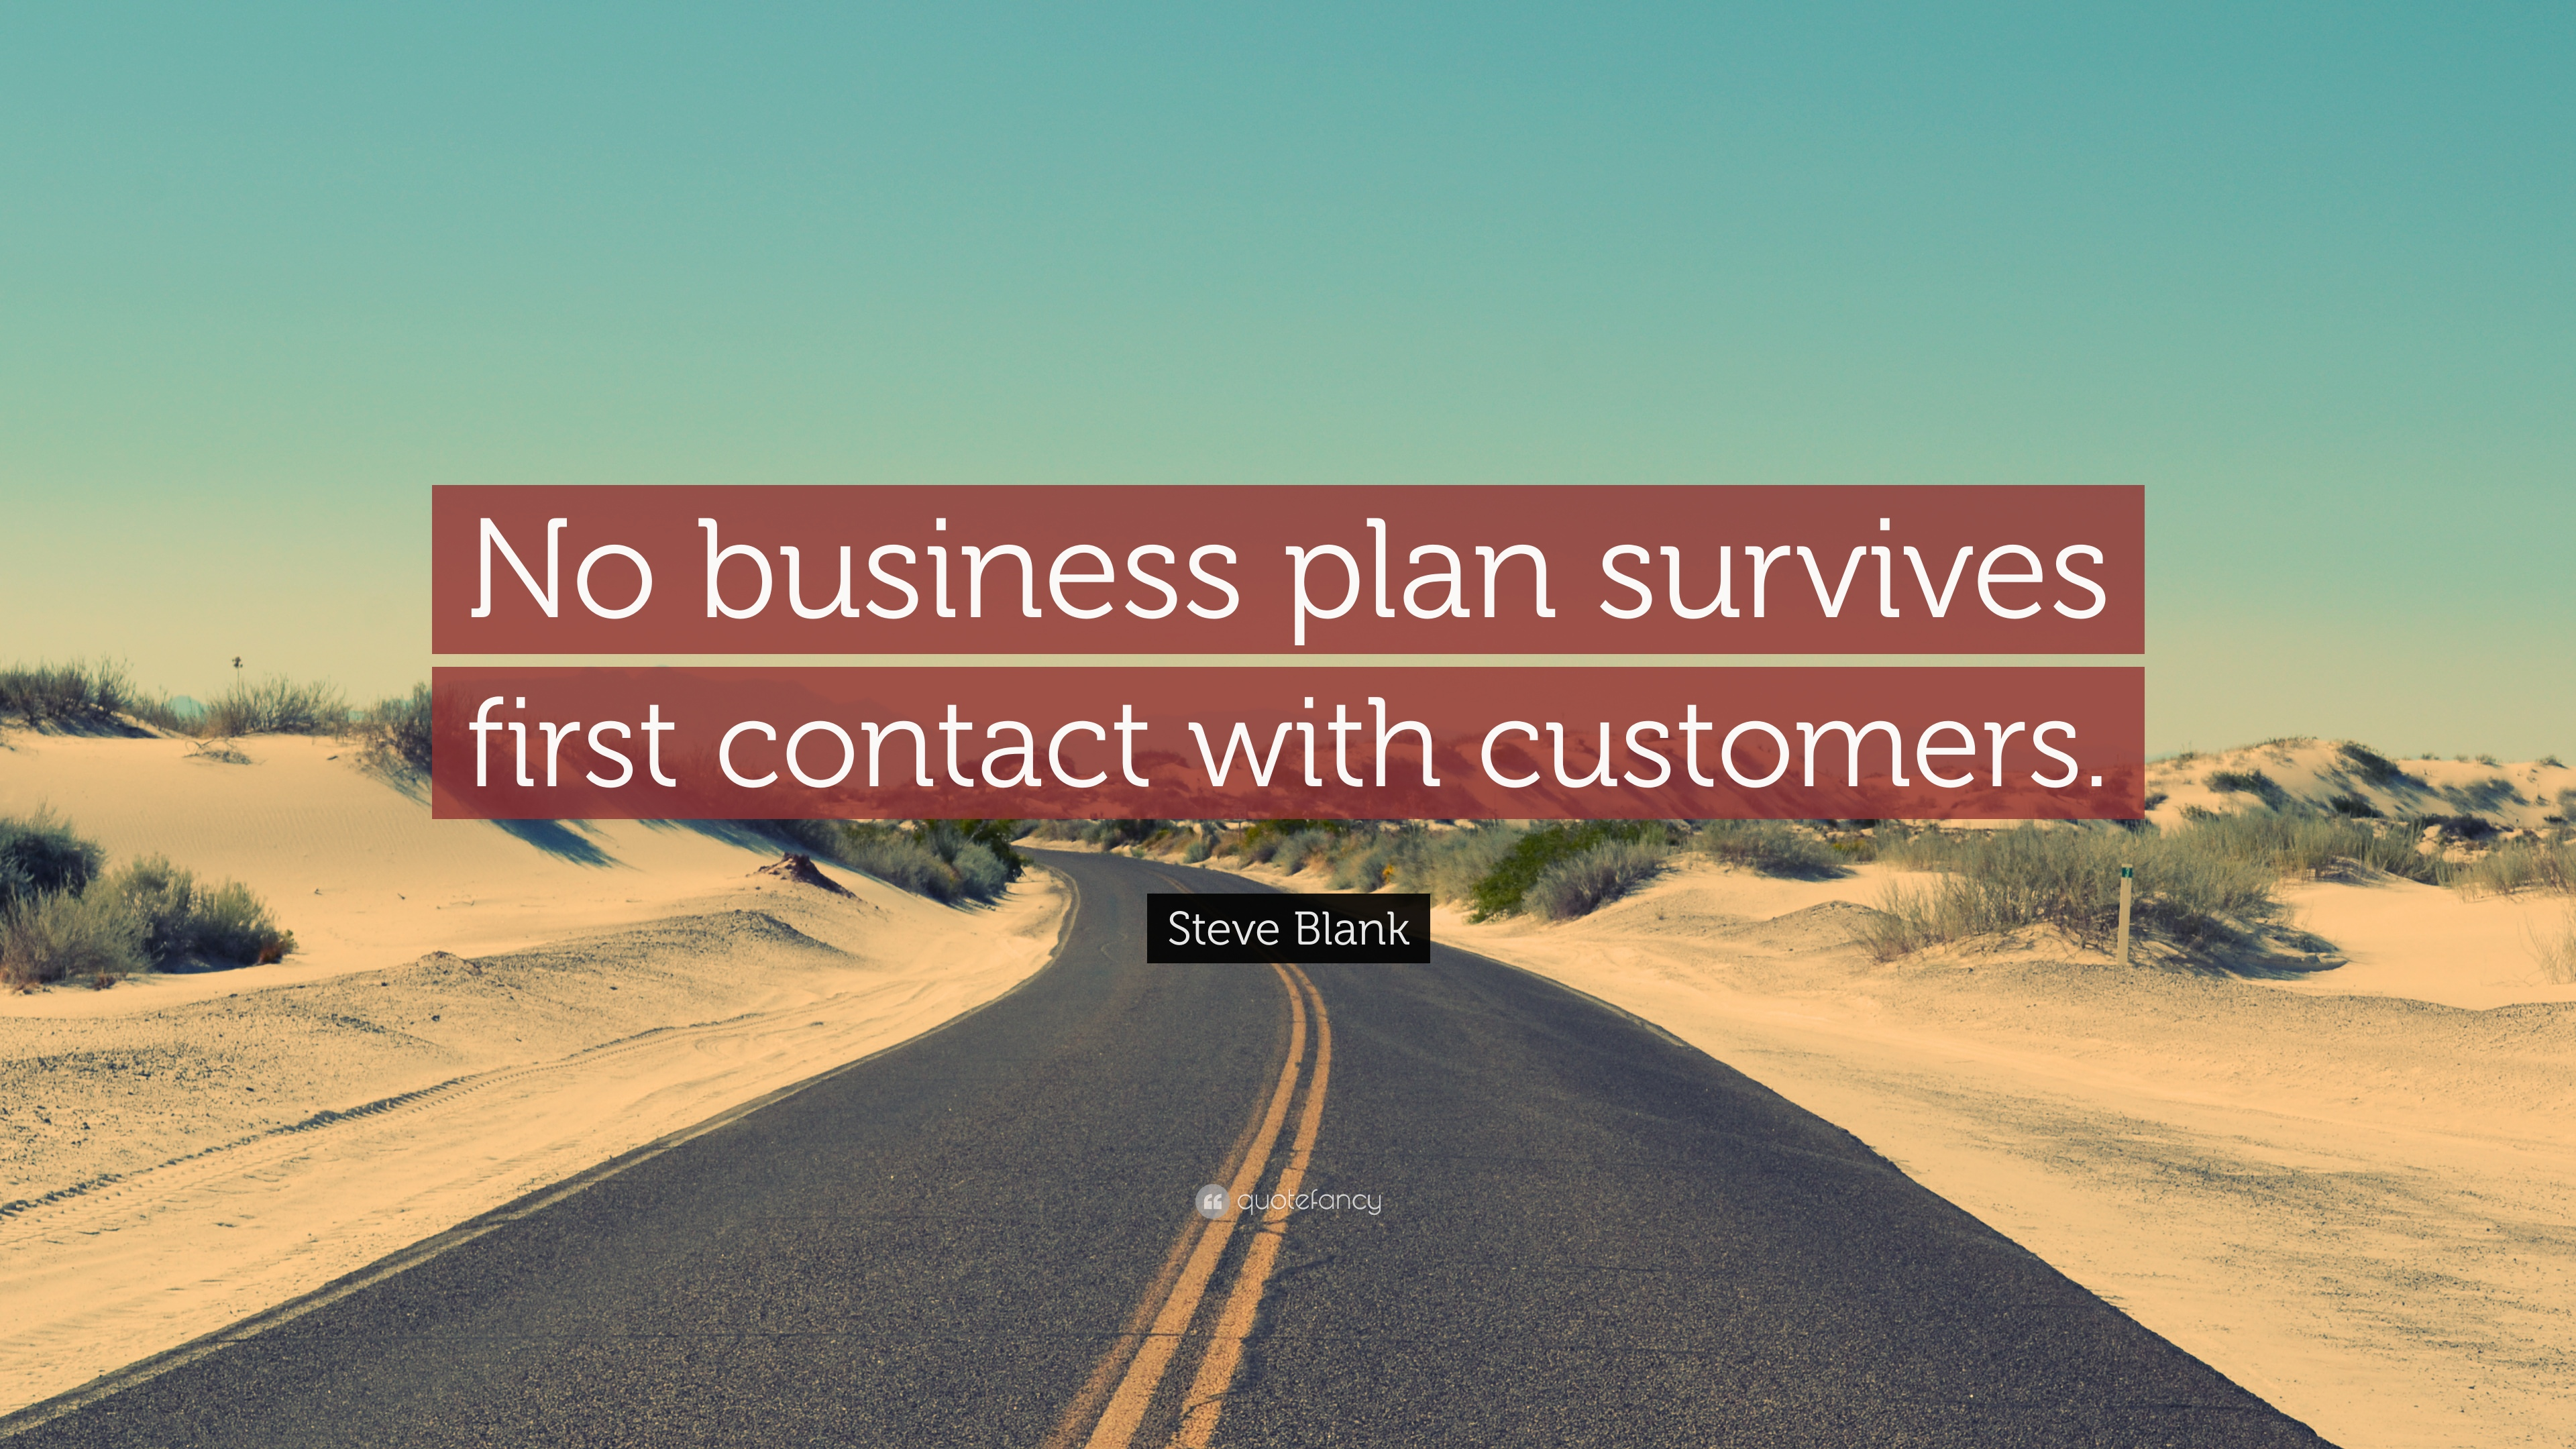 Most important part of a business plan